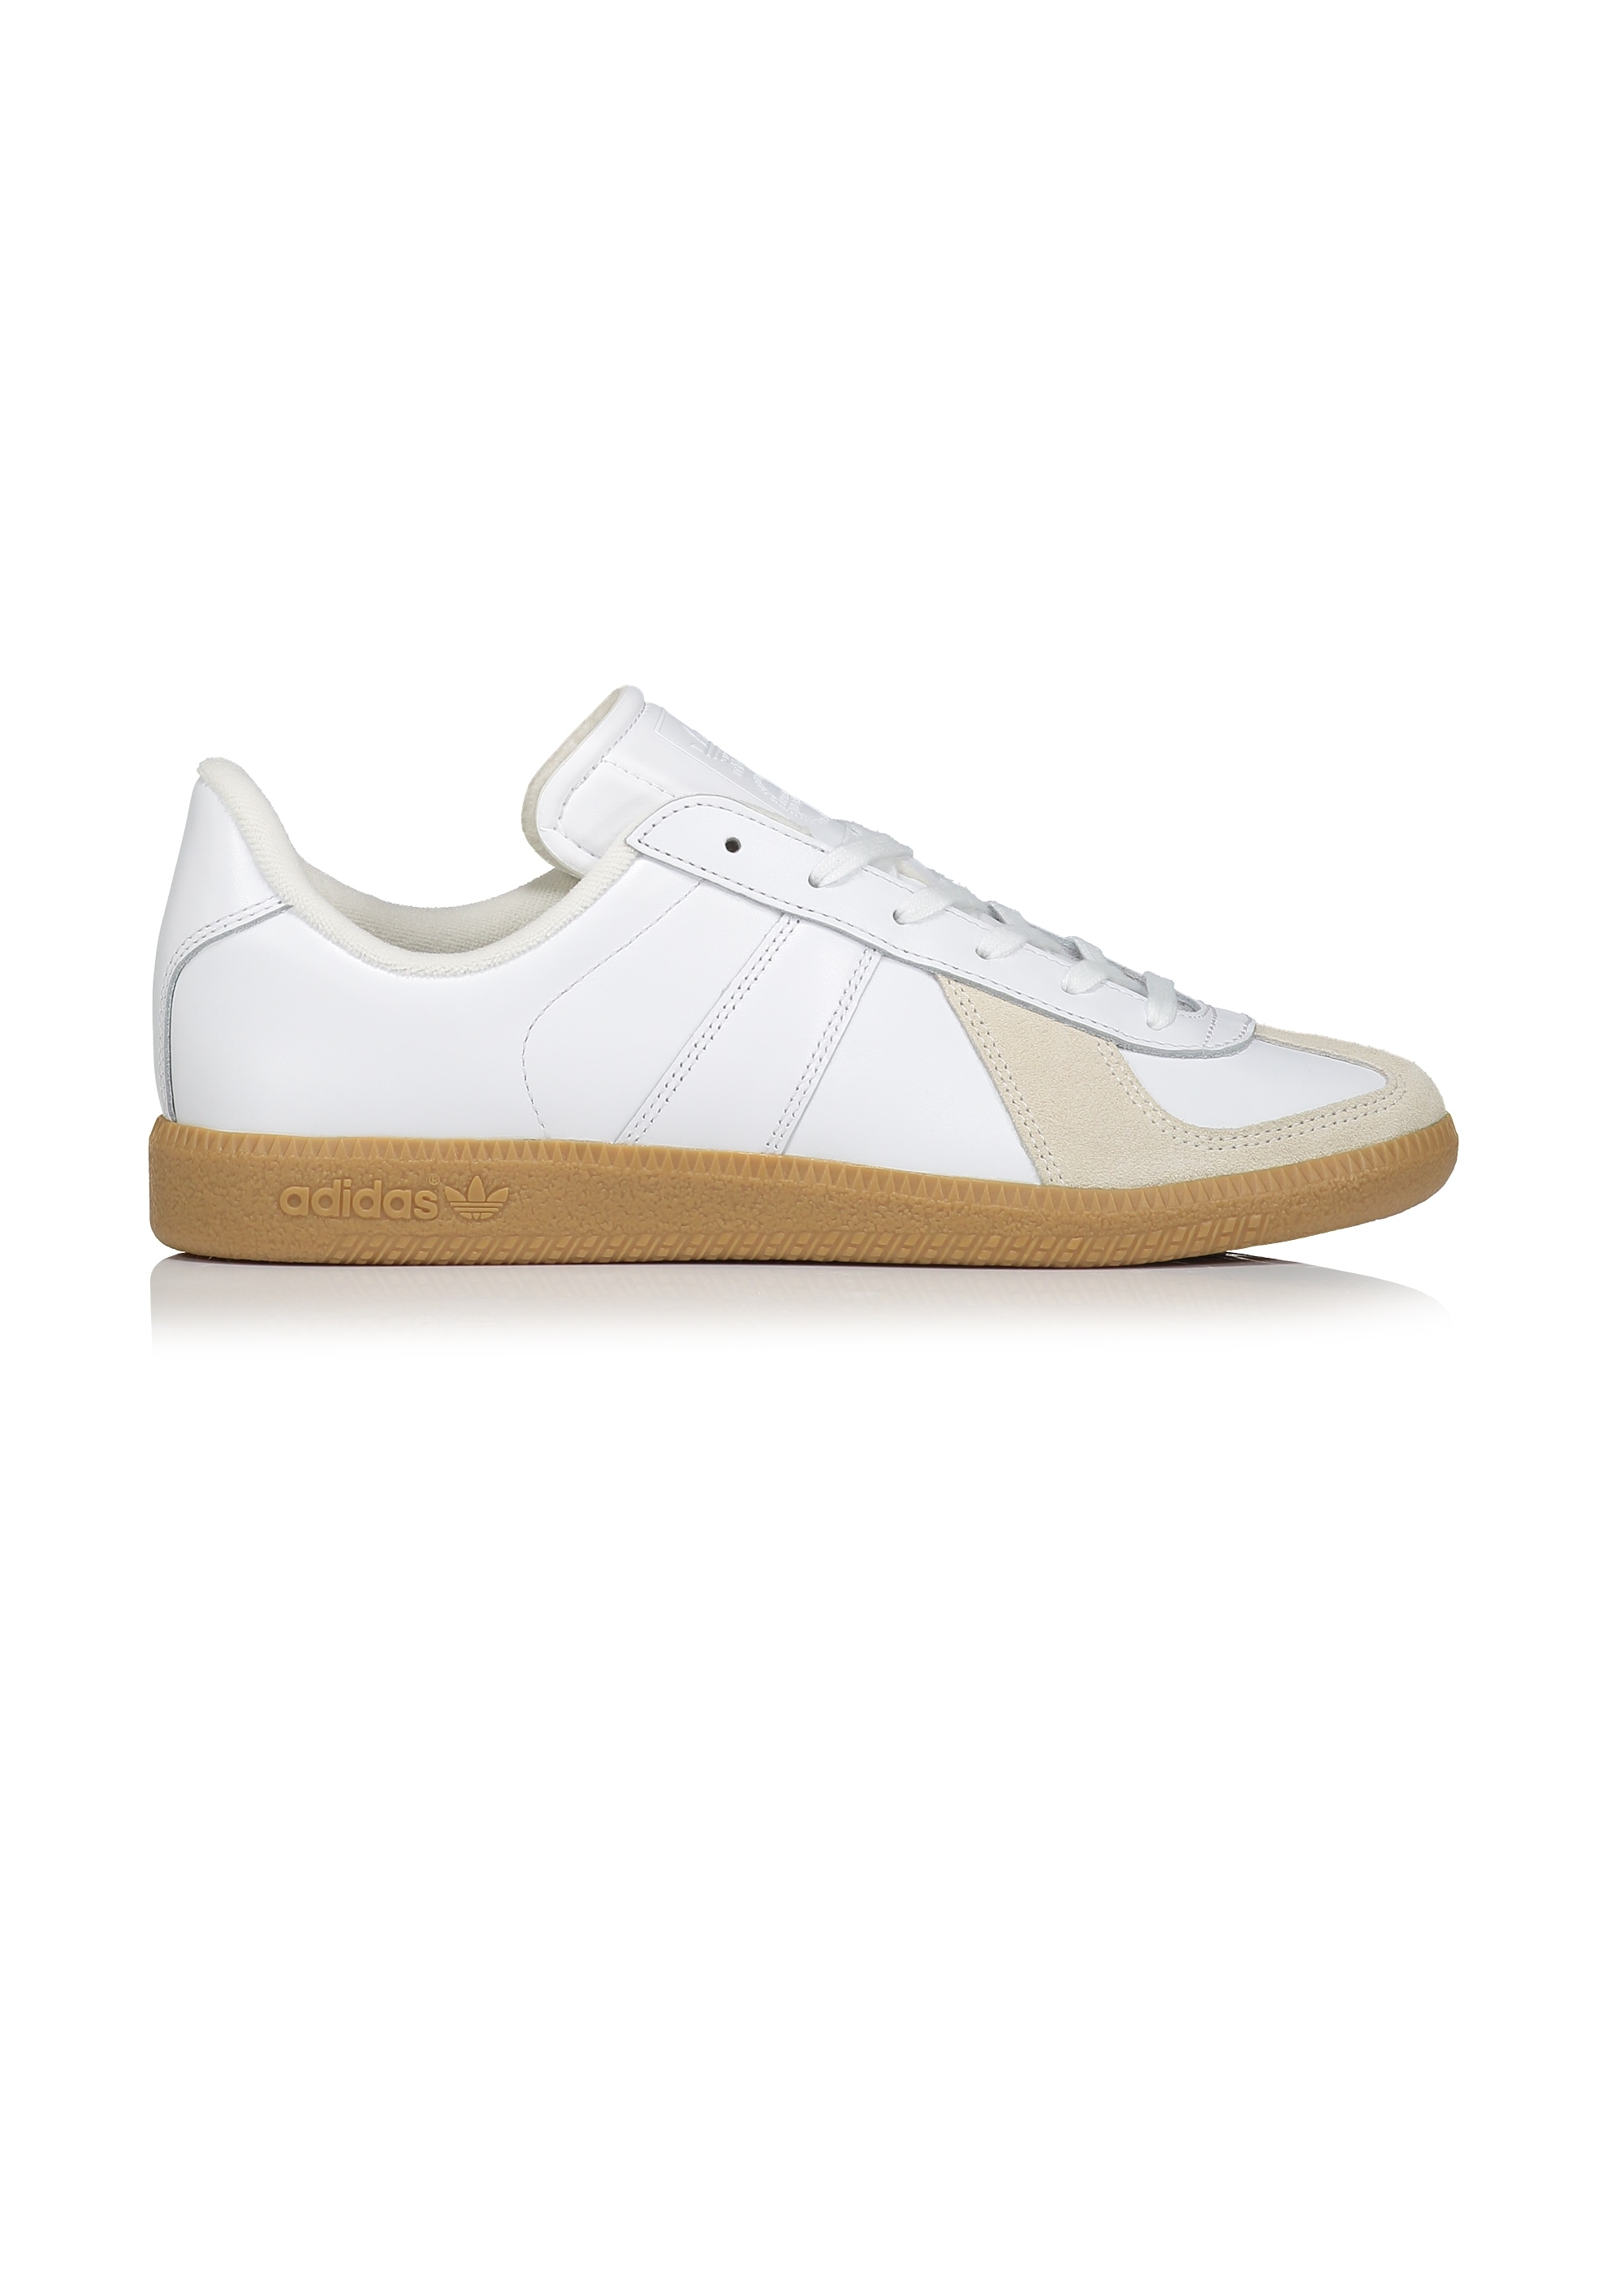 timeless design fe230 29249 adidas Originals Footwear BW Army - White - Triads Mens from